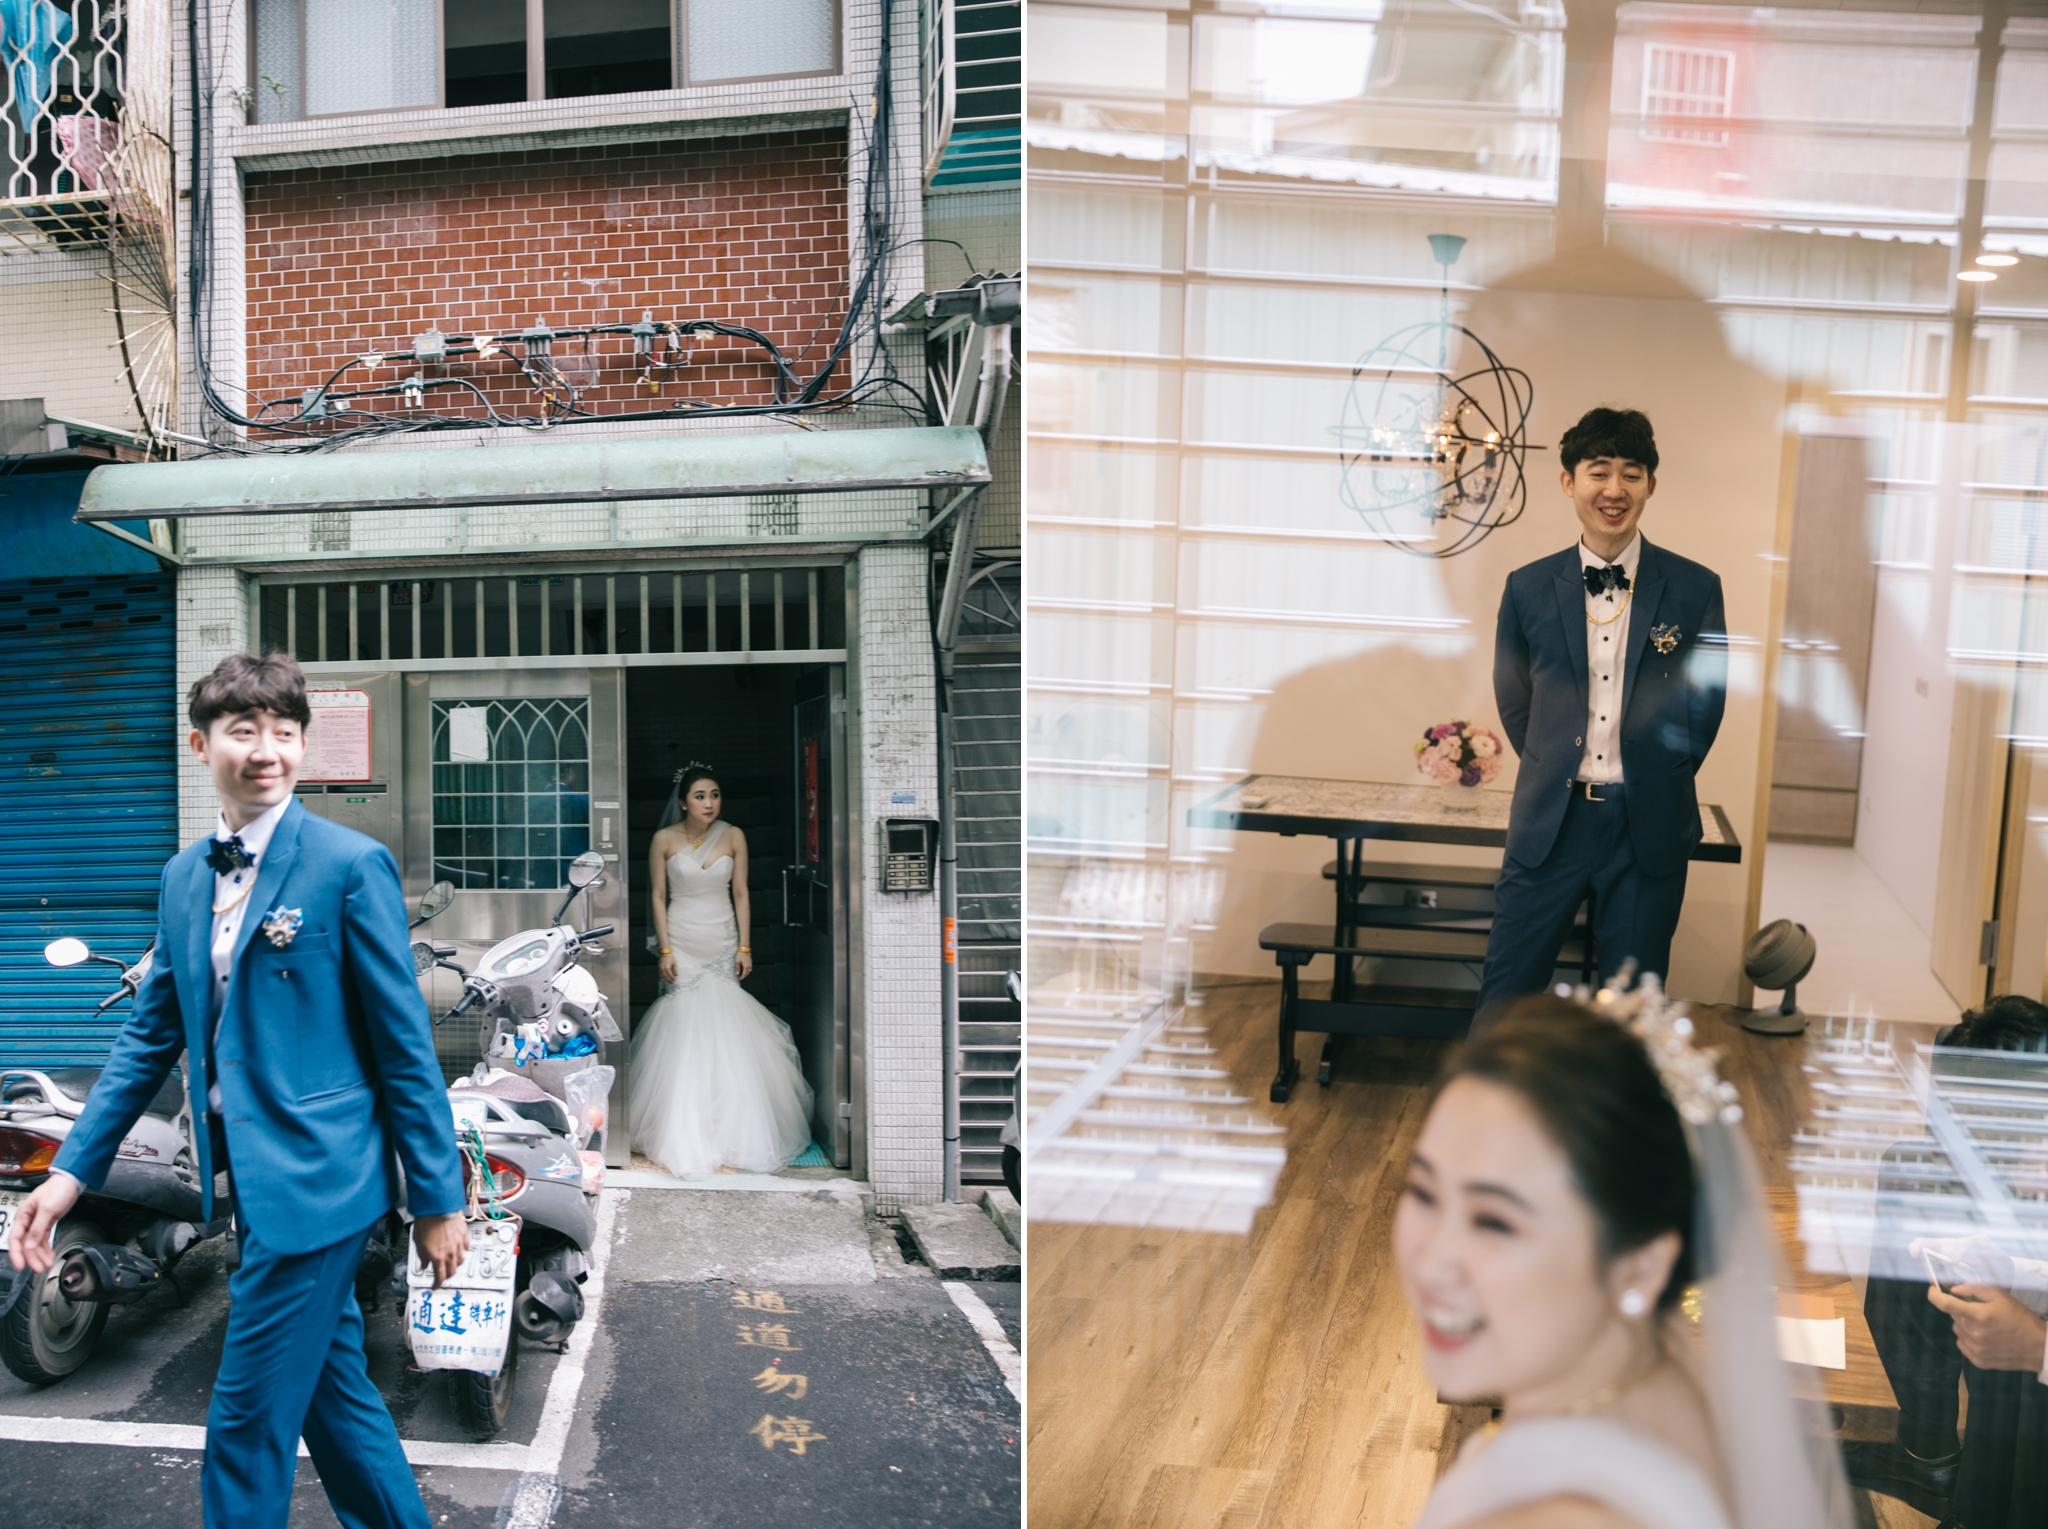 Keddy+Richard-wedding-新莊頤品飯店-146.jpg